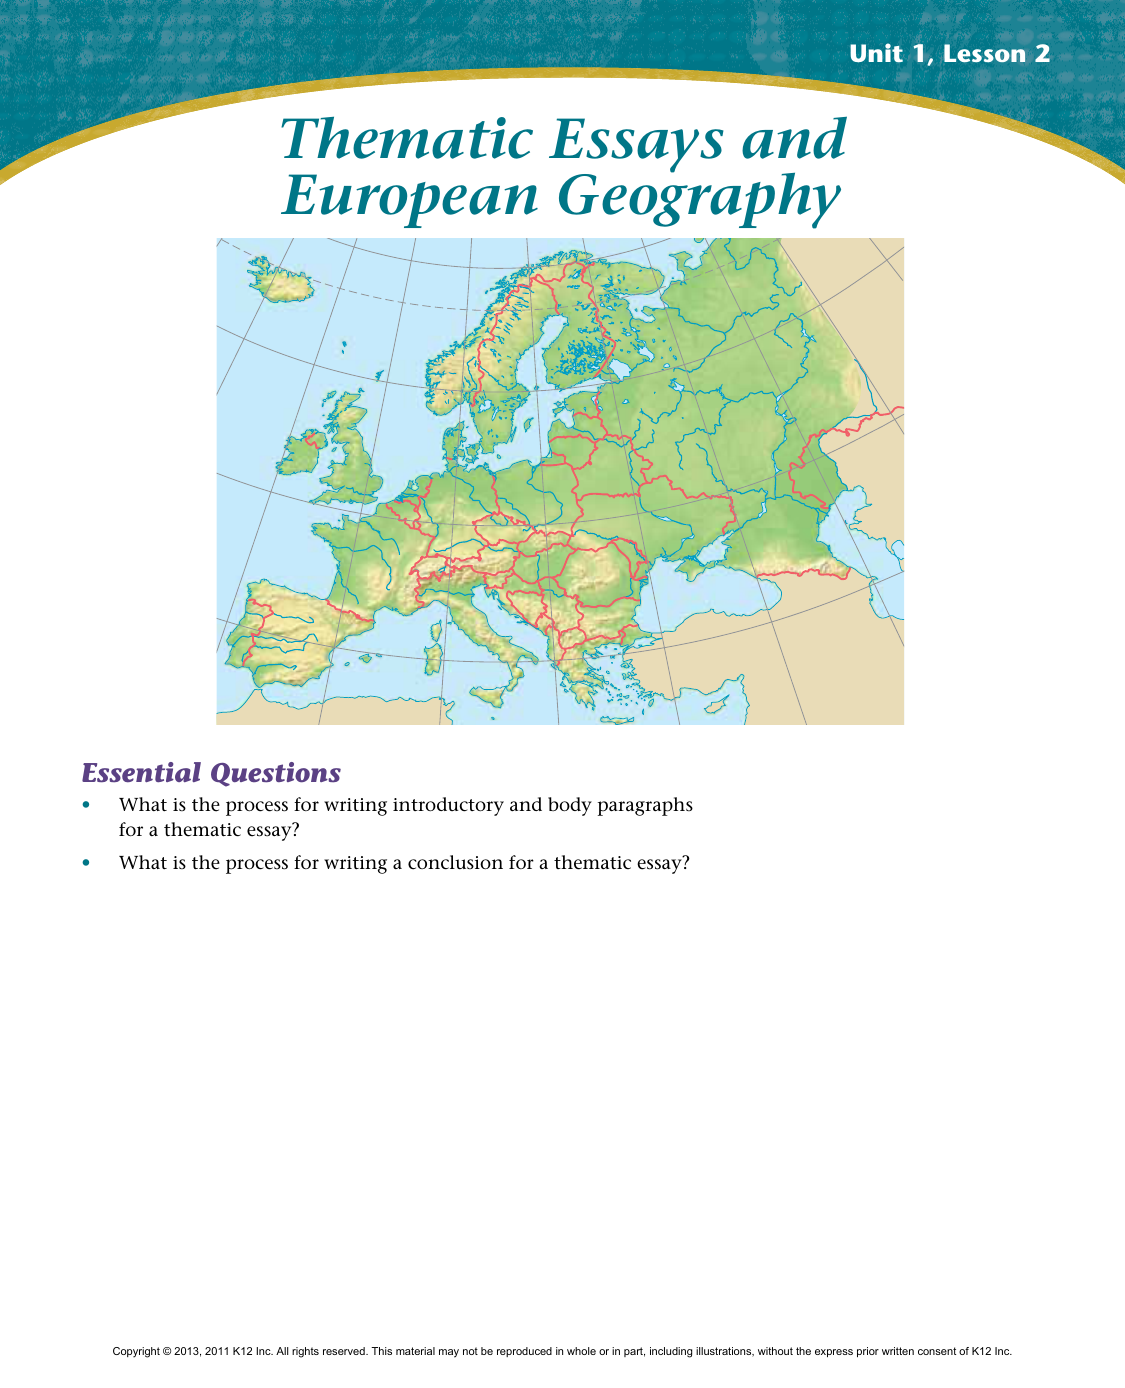 Thematic Essays and European Geography